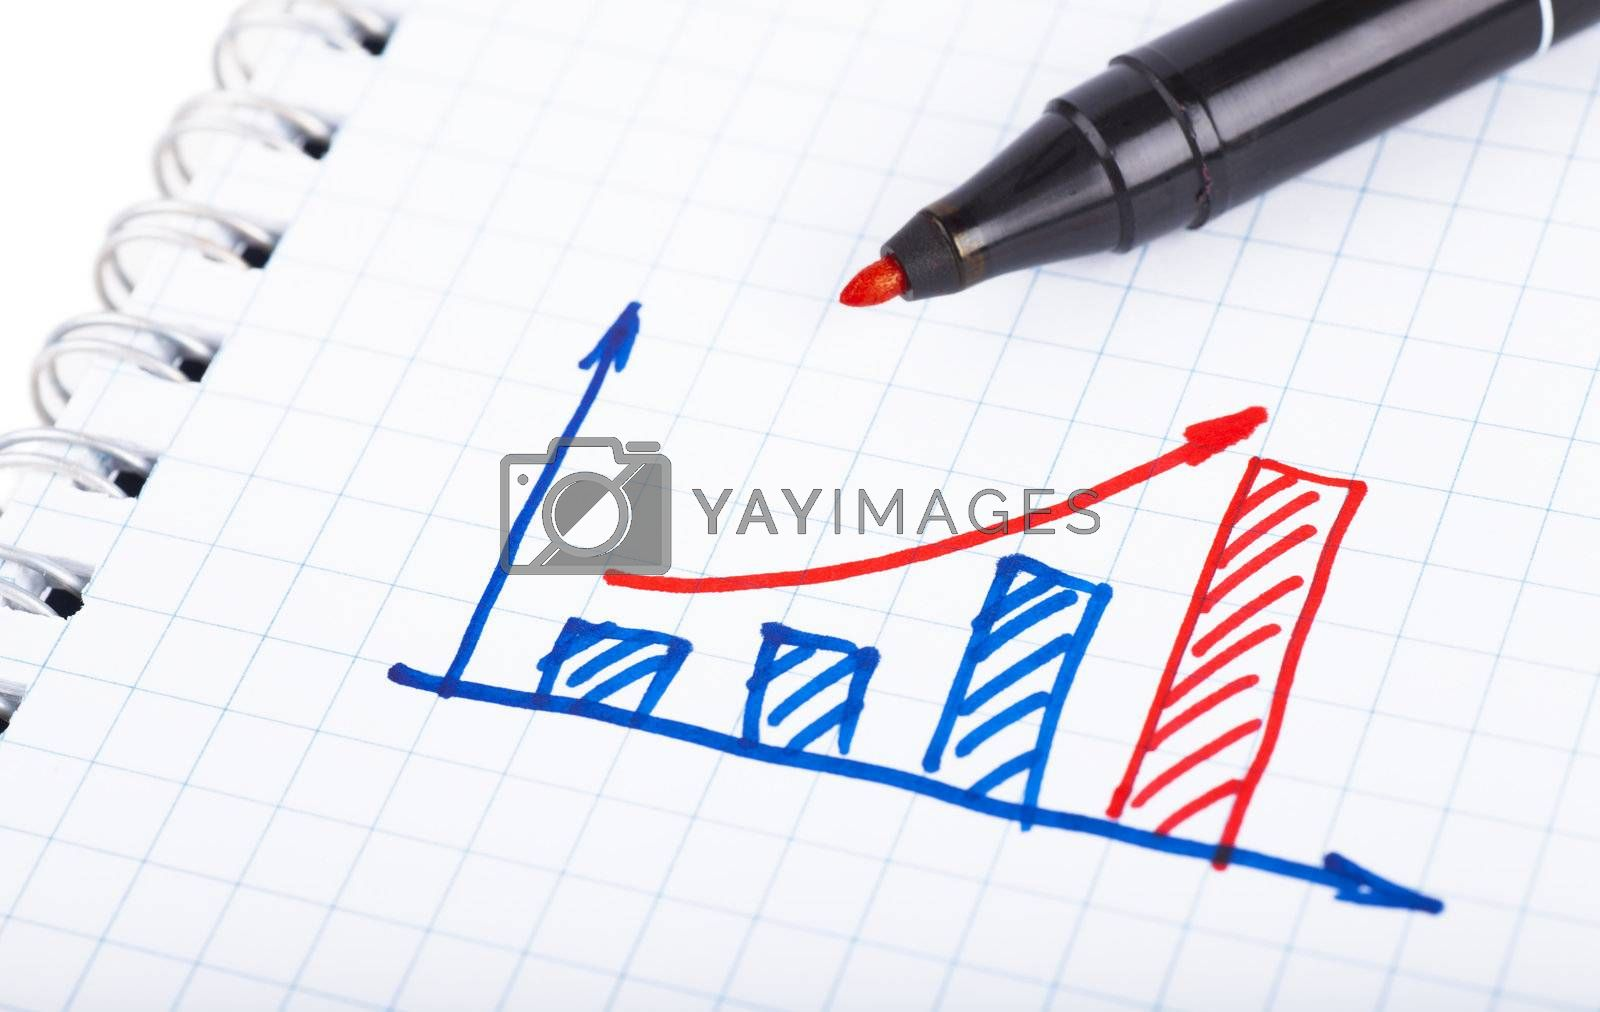 Graph drawn by hand on paper shit